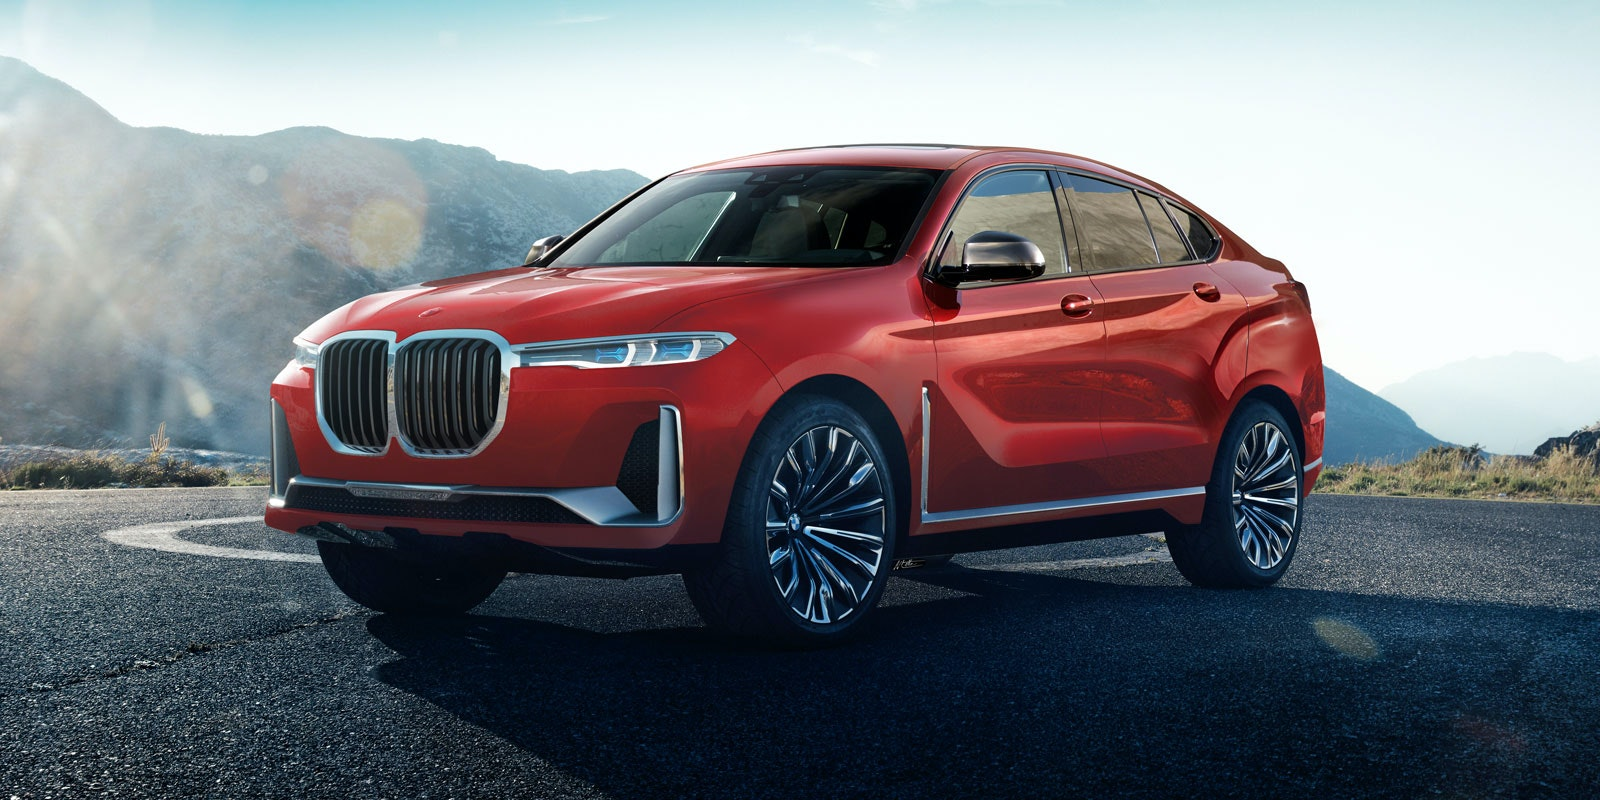 Bmw x8 red parked render lead 1.jpg?ixlib=rb 1.1